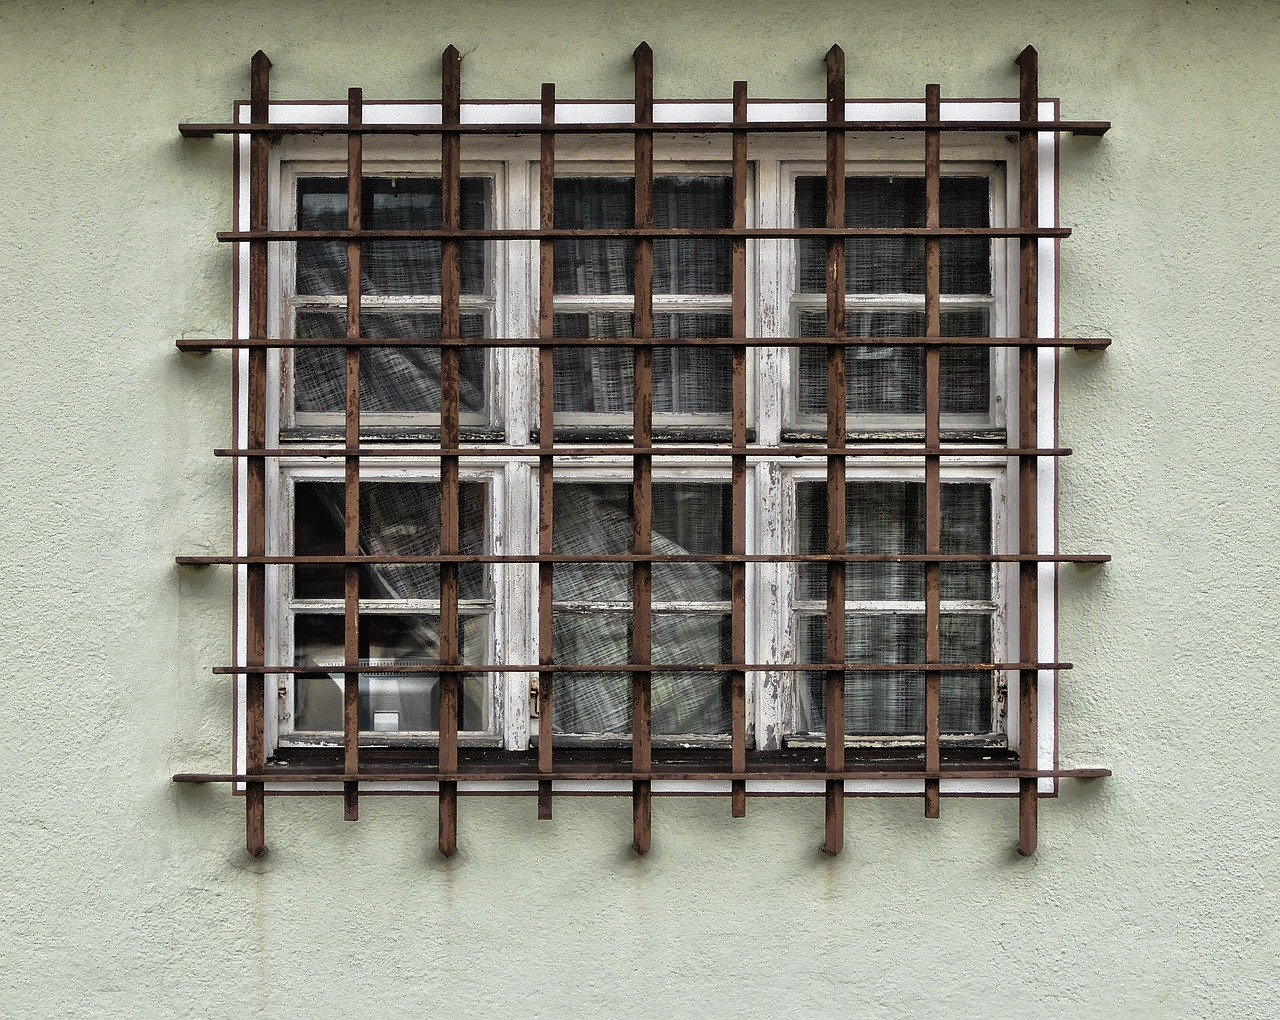 facade, grid, window